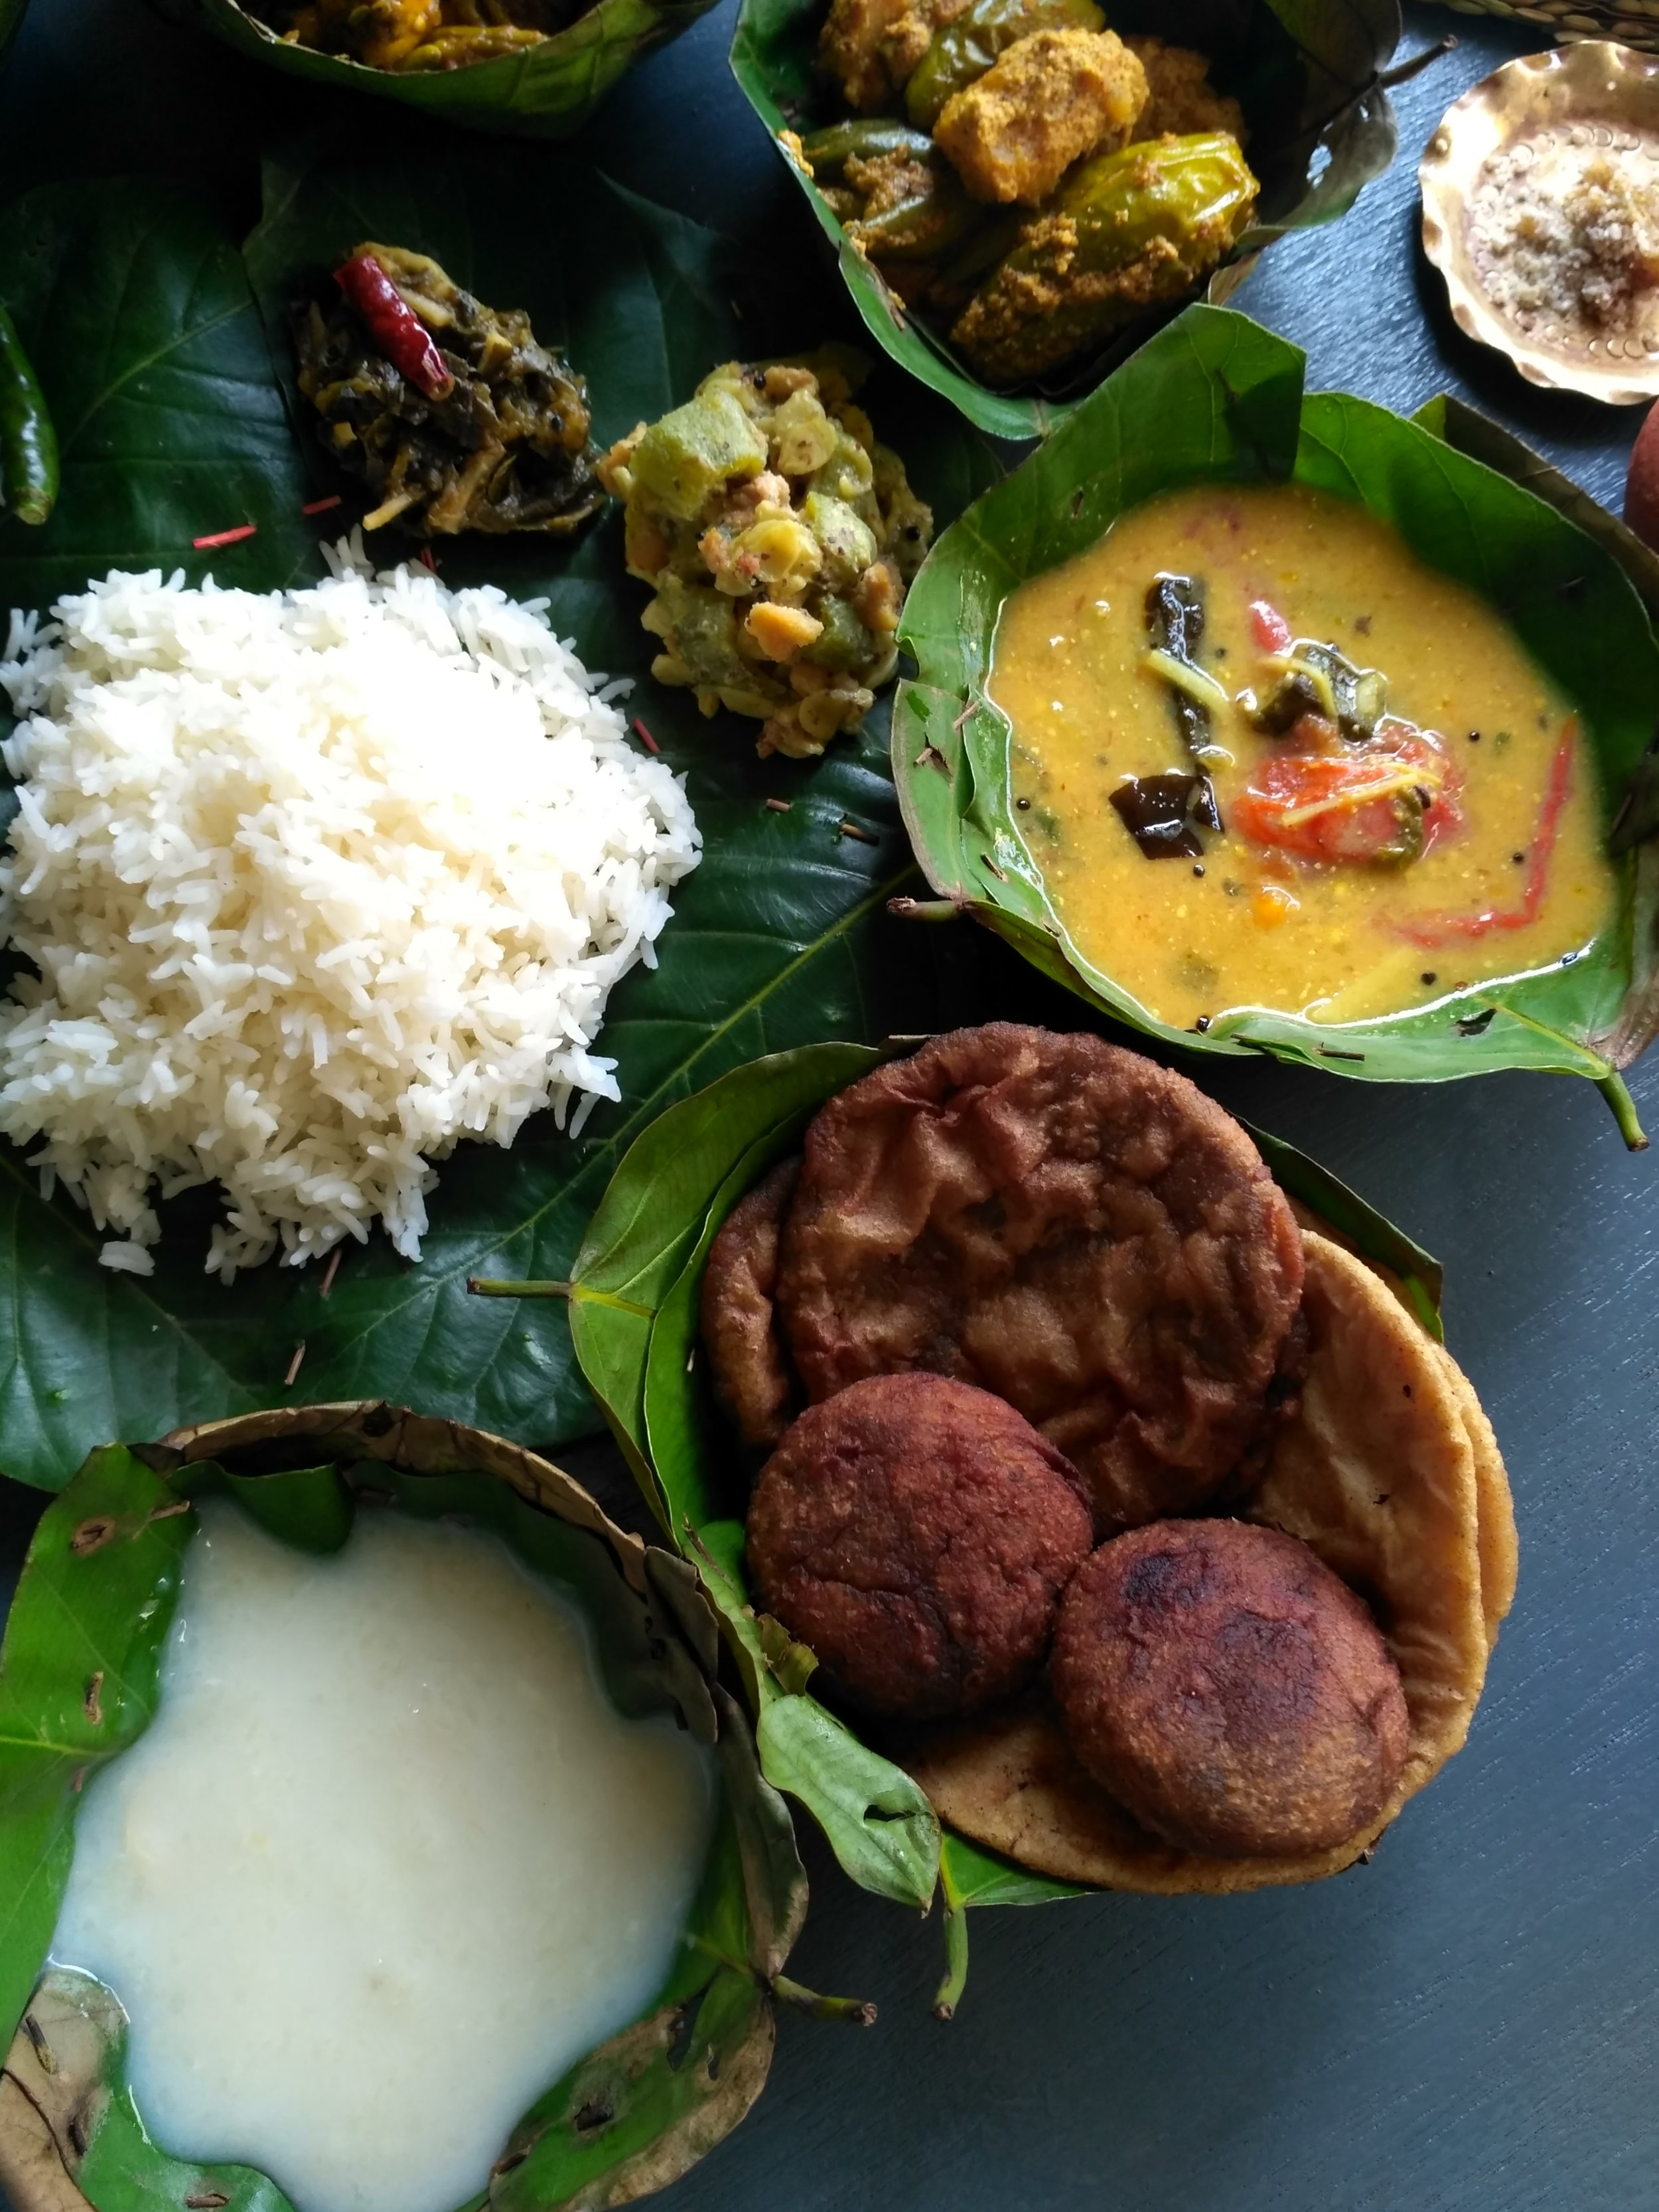 Western odisha's famous Nuakhai lunch where ambil is served with sun dried mango, bamboo shoots, curd and chickpea flour   Photo by A Treasure of Food.